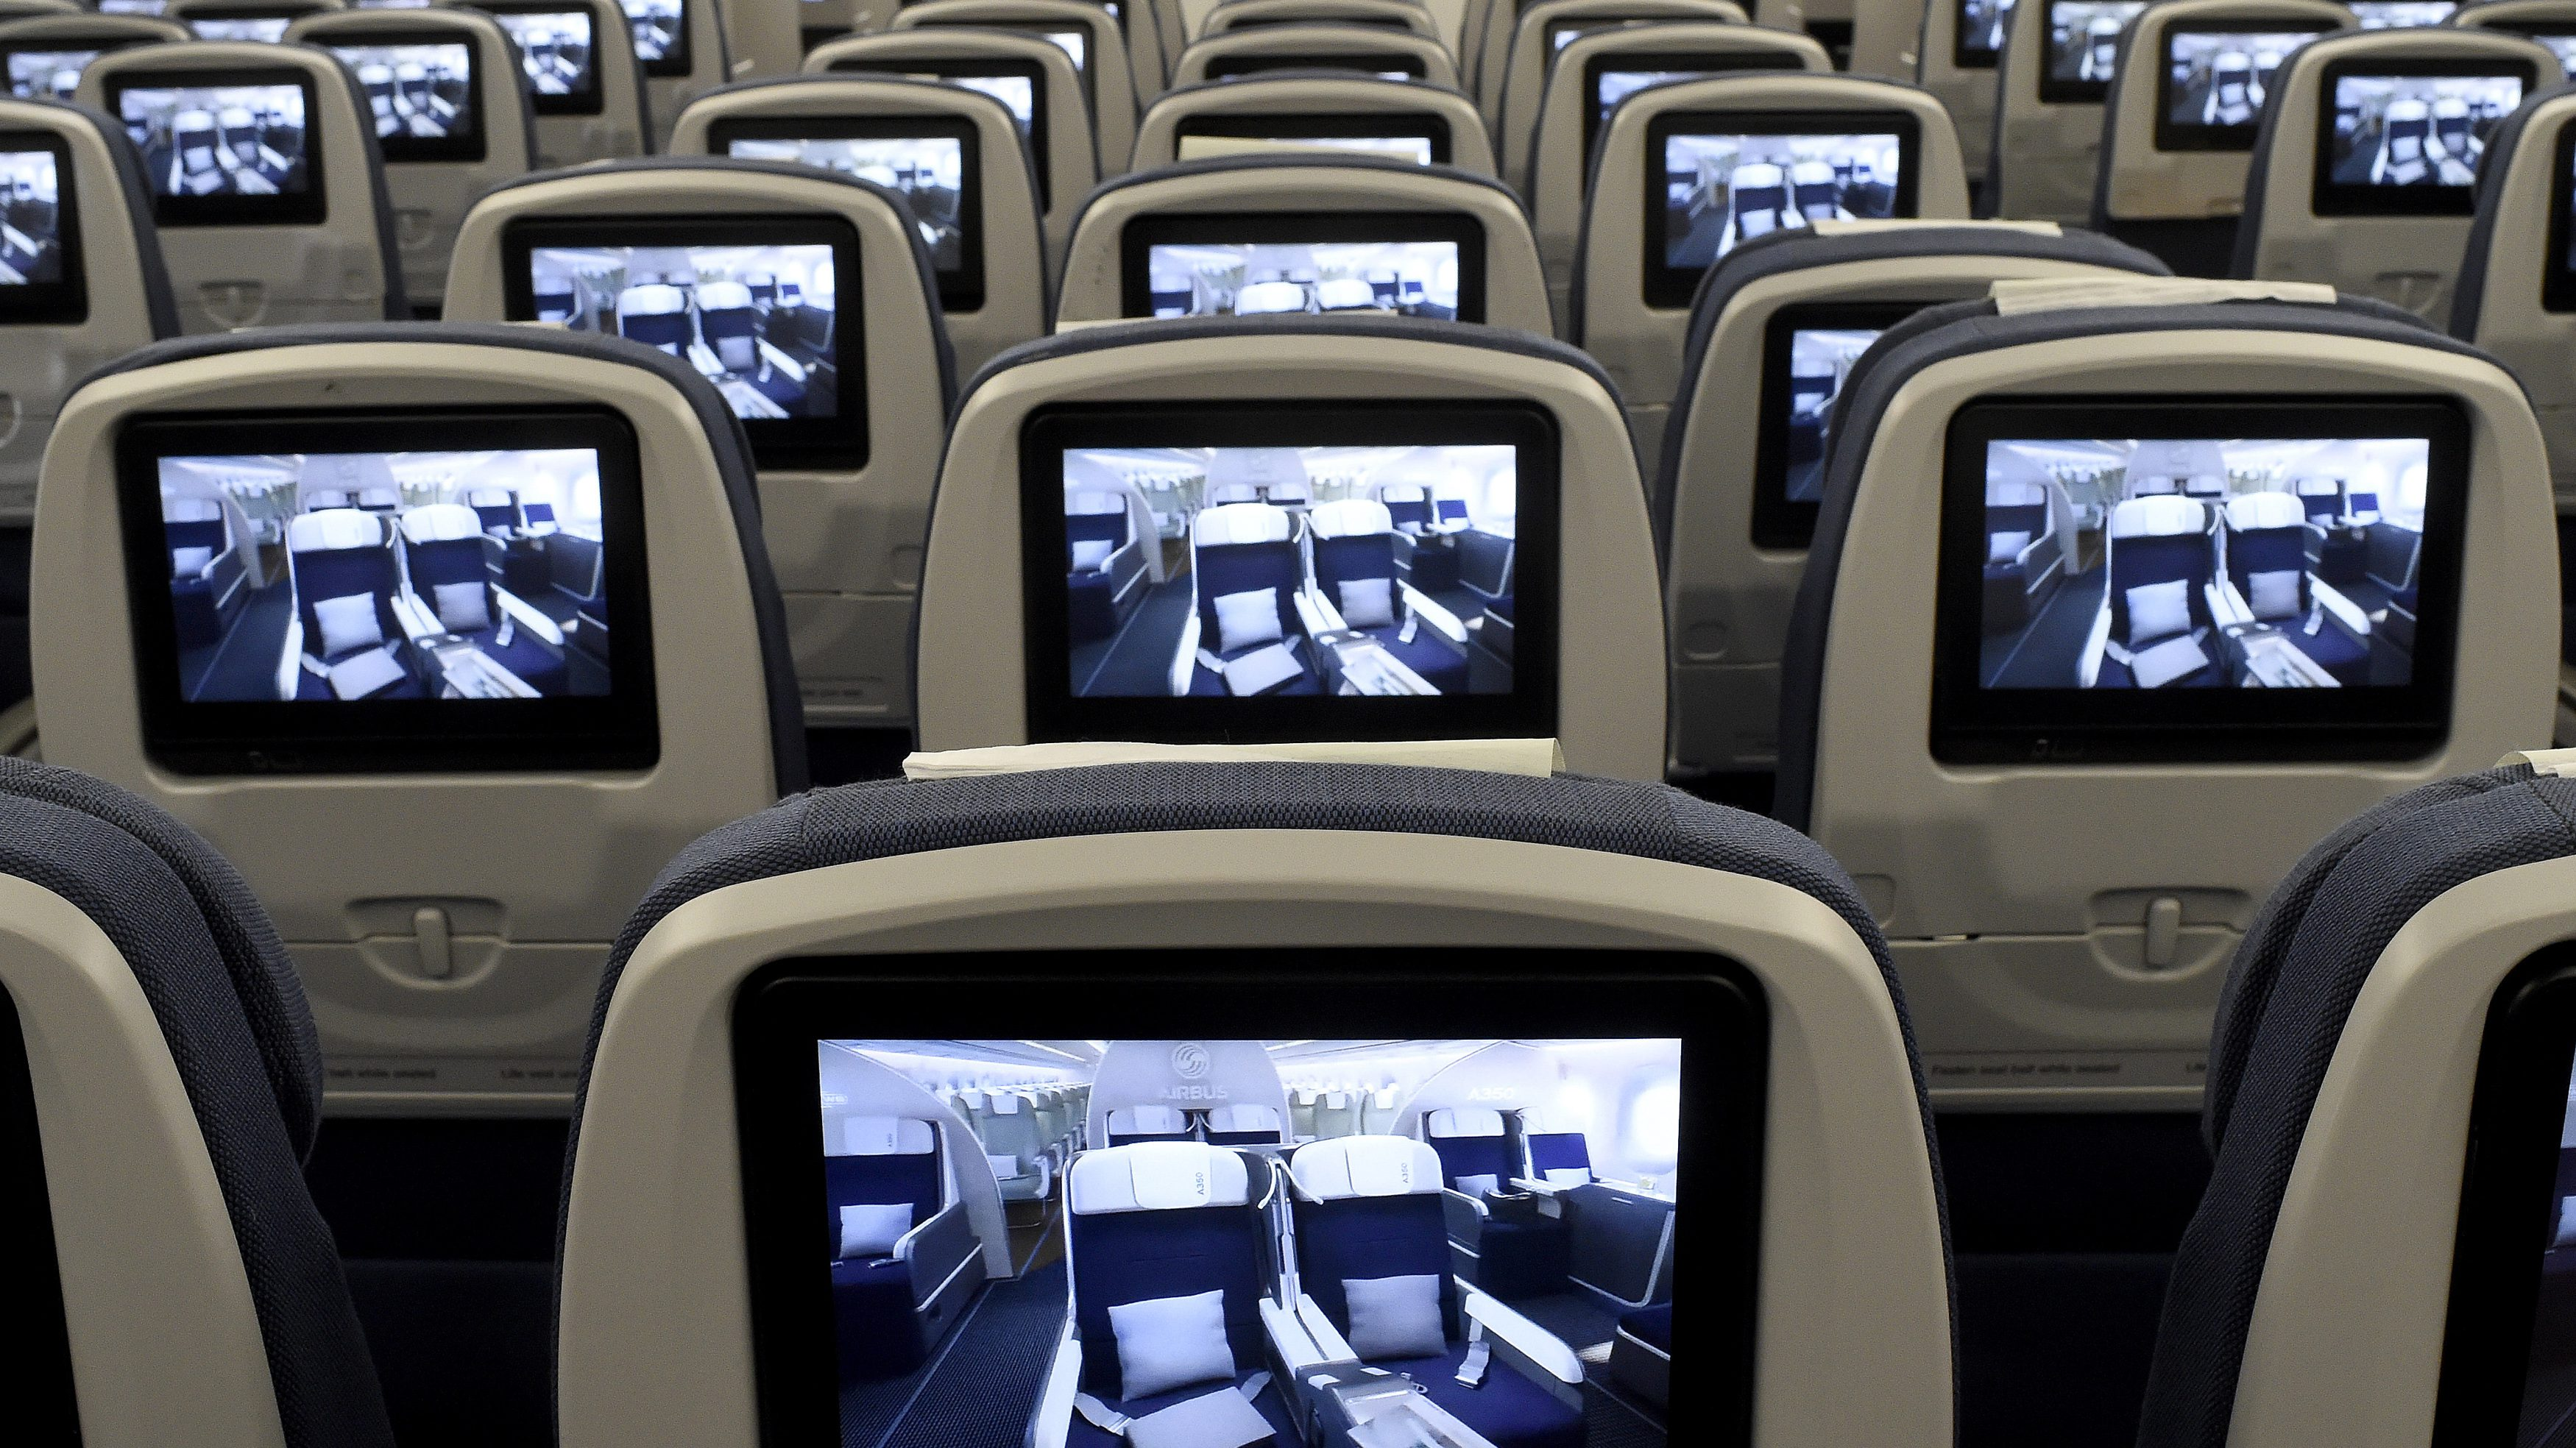 TV screens, installed on board of an Airbus A350 XWB flight-test aircraft are pictured during a media-day at the German headquarters of aircraft company Airbus in Hamburg-Finkenwerder, April 7, 2014. European planemaker Airbus unveiled on Monday the first cabin for its new mid-sized twin-engined airliner, the A350 XWB, vowing to avoid a repeat of the delays caused by cabin design changes on its bigger A380 super jumbo.